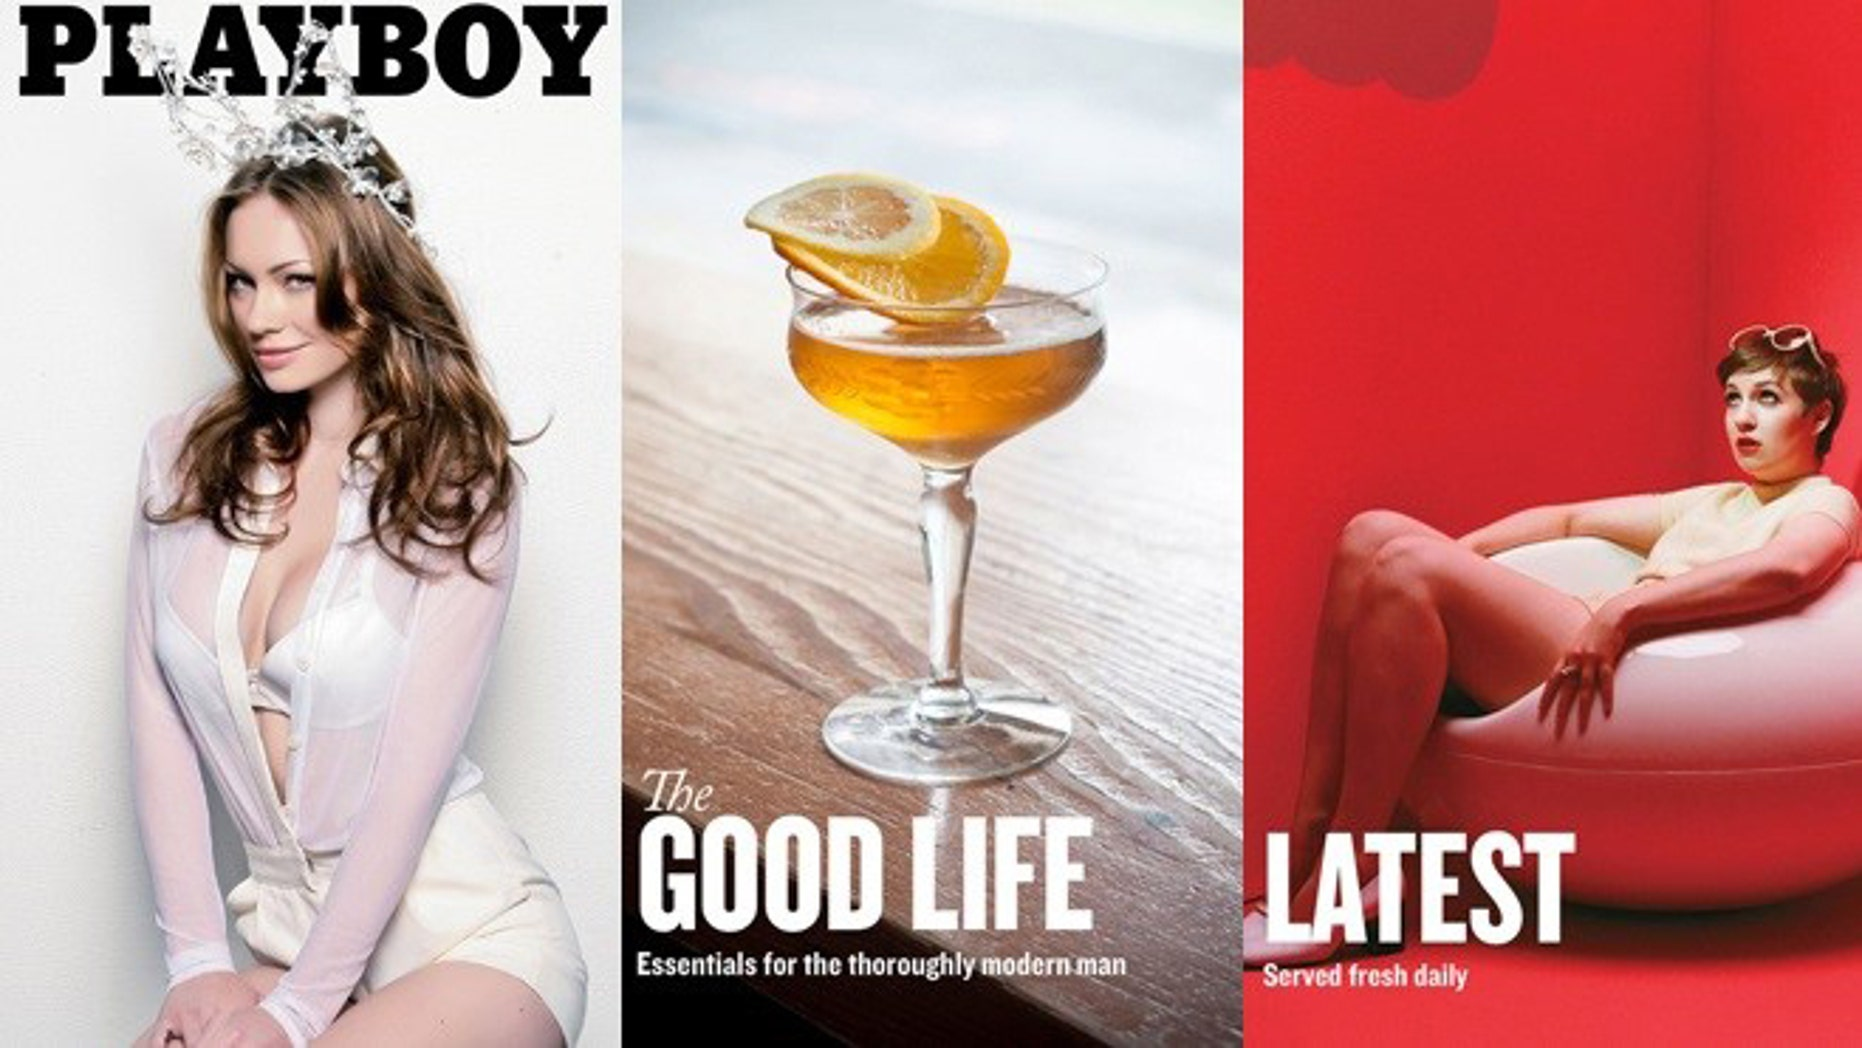 Playboy Playmate Kim Phillips, a feature on cocktails, and HBO comedy 'Girls' creator Lena Dunham -- just some of the non-nude content featured in Playboy's new iPhone app.